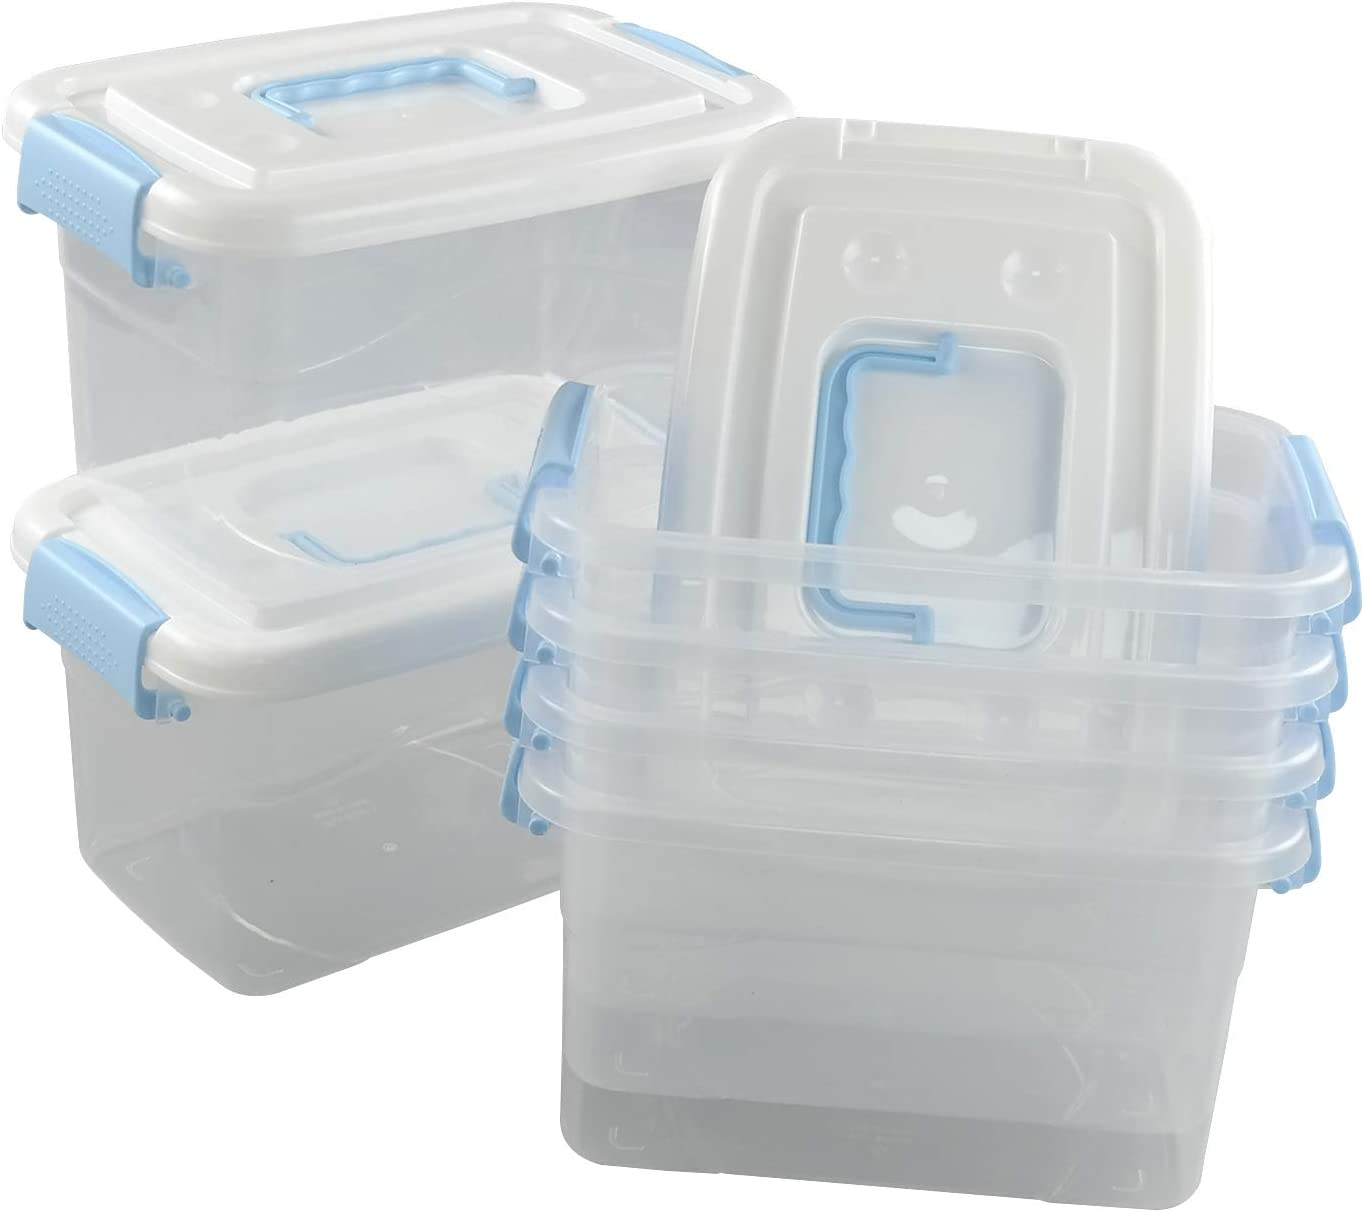 Jandson 5 favorite Manufacturer direct delivery Quart Clear Storage Bin Box with B Latching Container